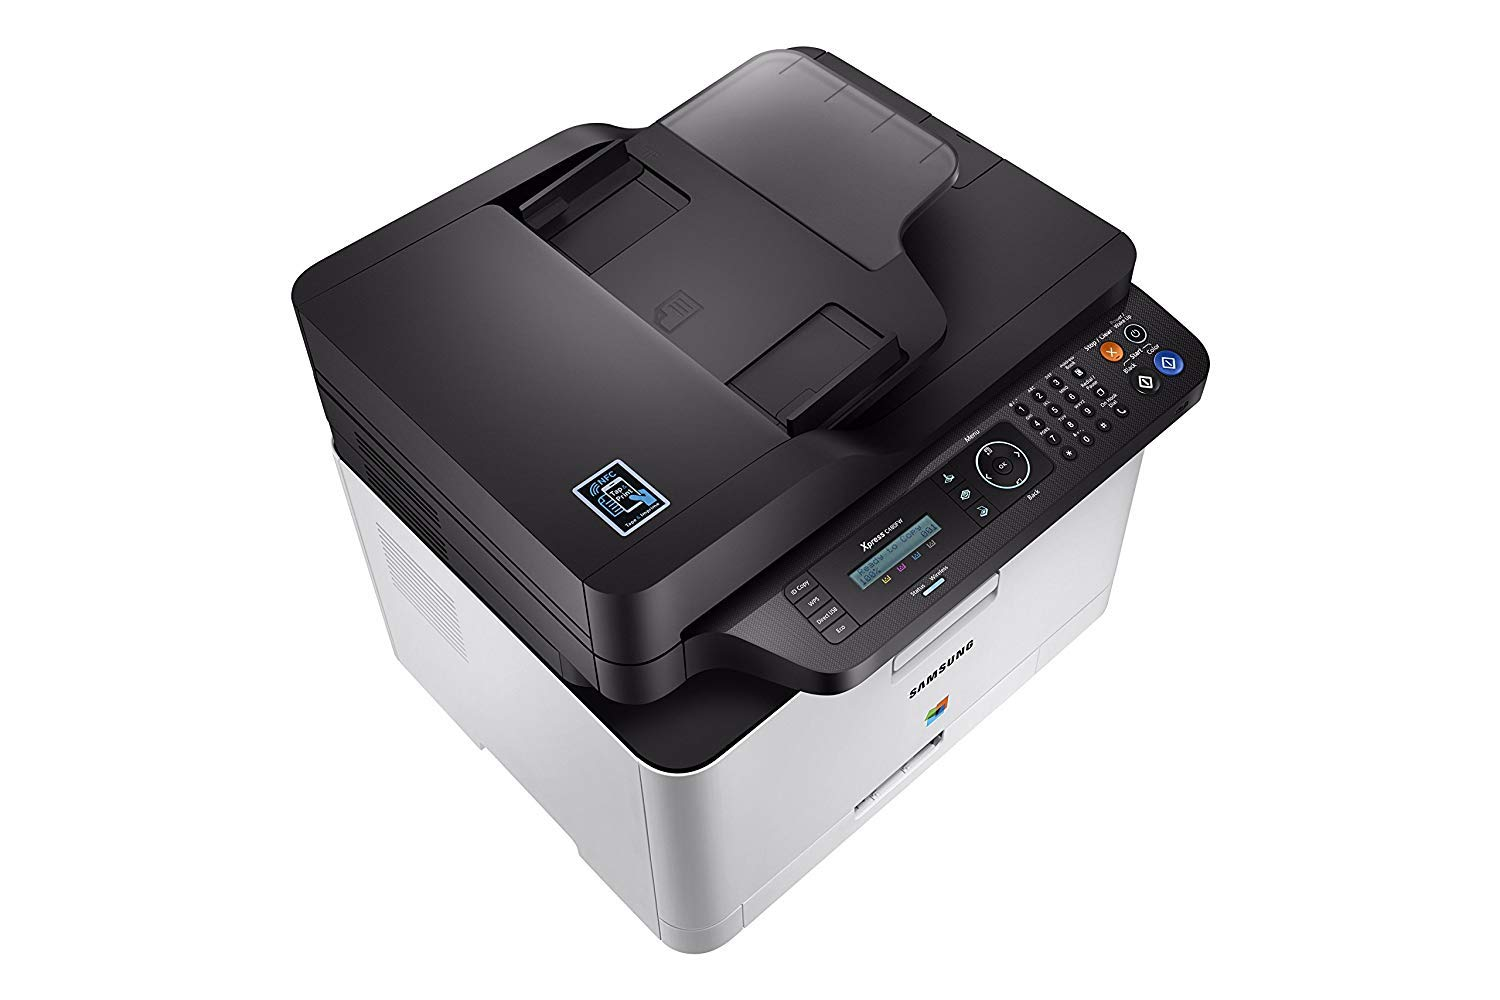 Dash Replenishment Enabled Samsung SS256H#BGJ Electronics Xpress SL-C480FW//XAA Wireless Color Printer with Scanner Copier /& Fax